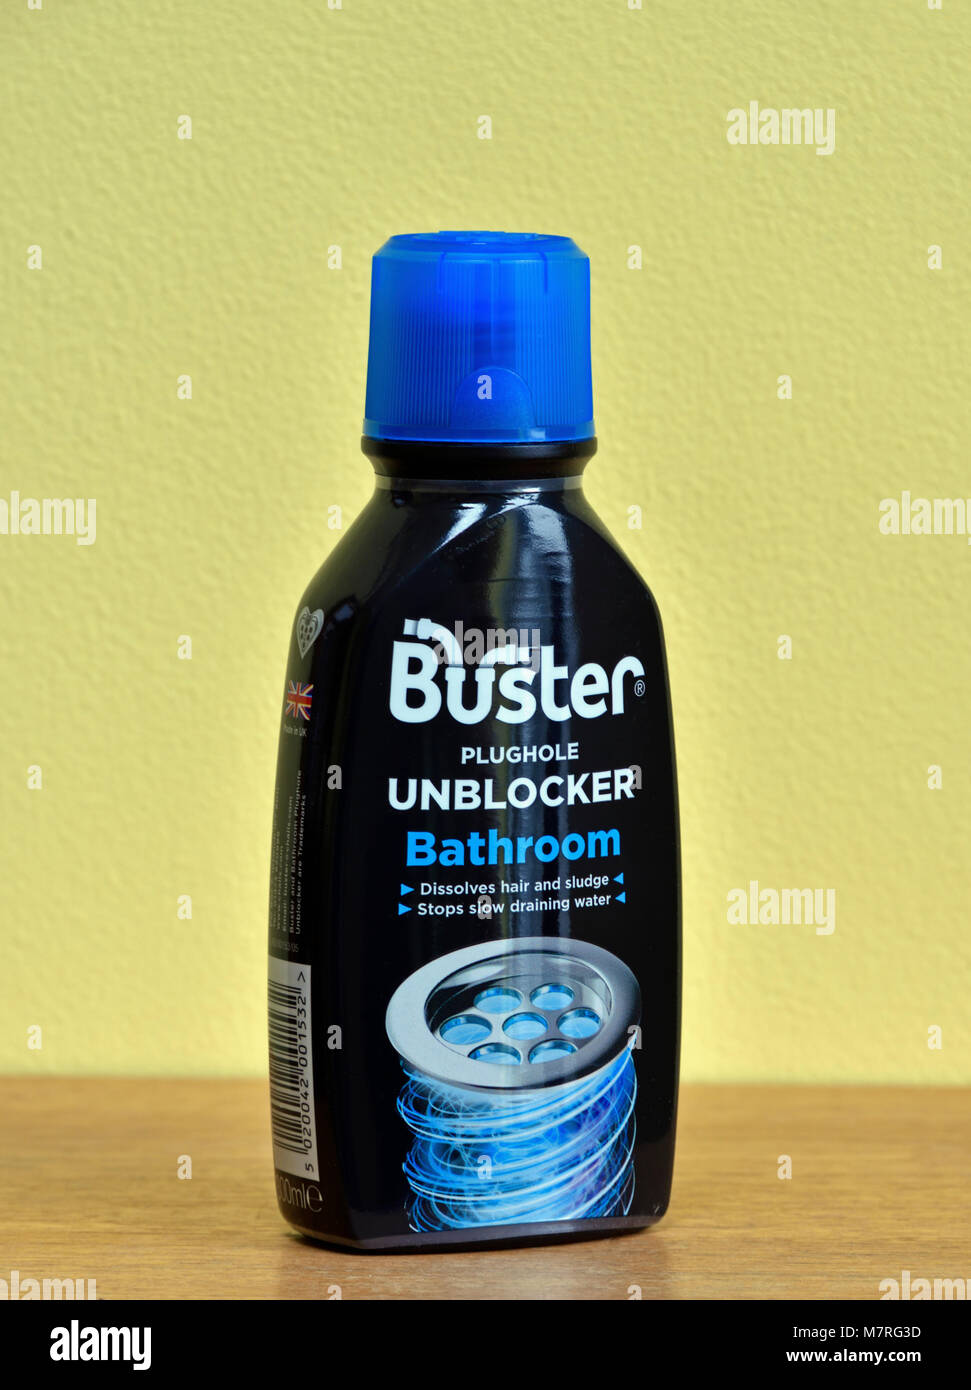 Plastic bottle of Buster Plughole Unblocker. Bathroom. Dissolves hair and sludge. Stops slow draining water. - Stock Image